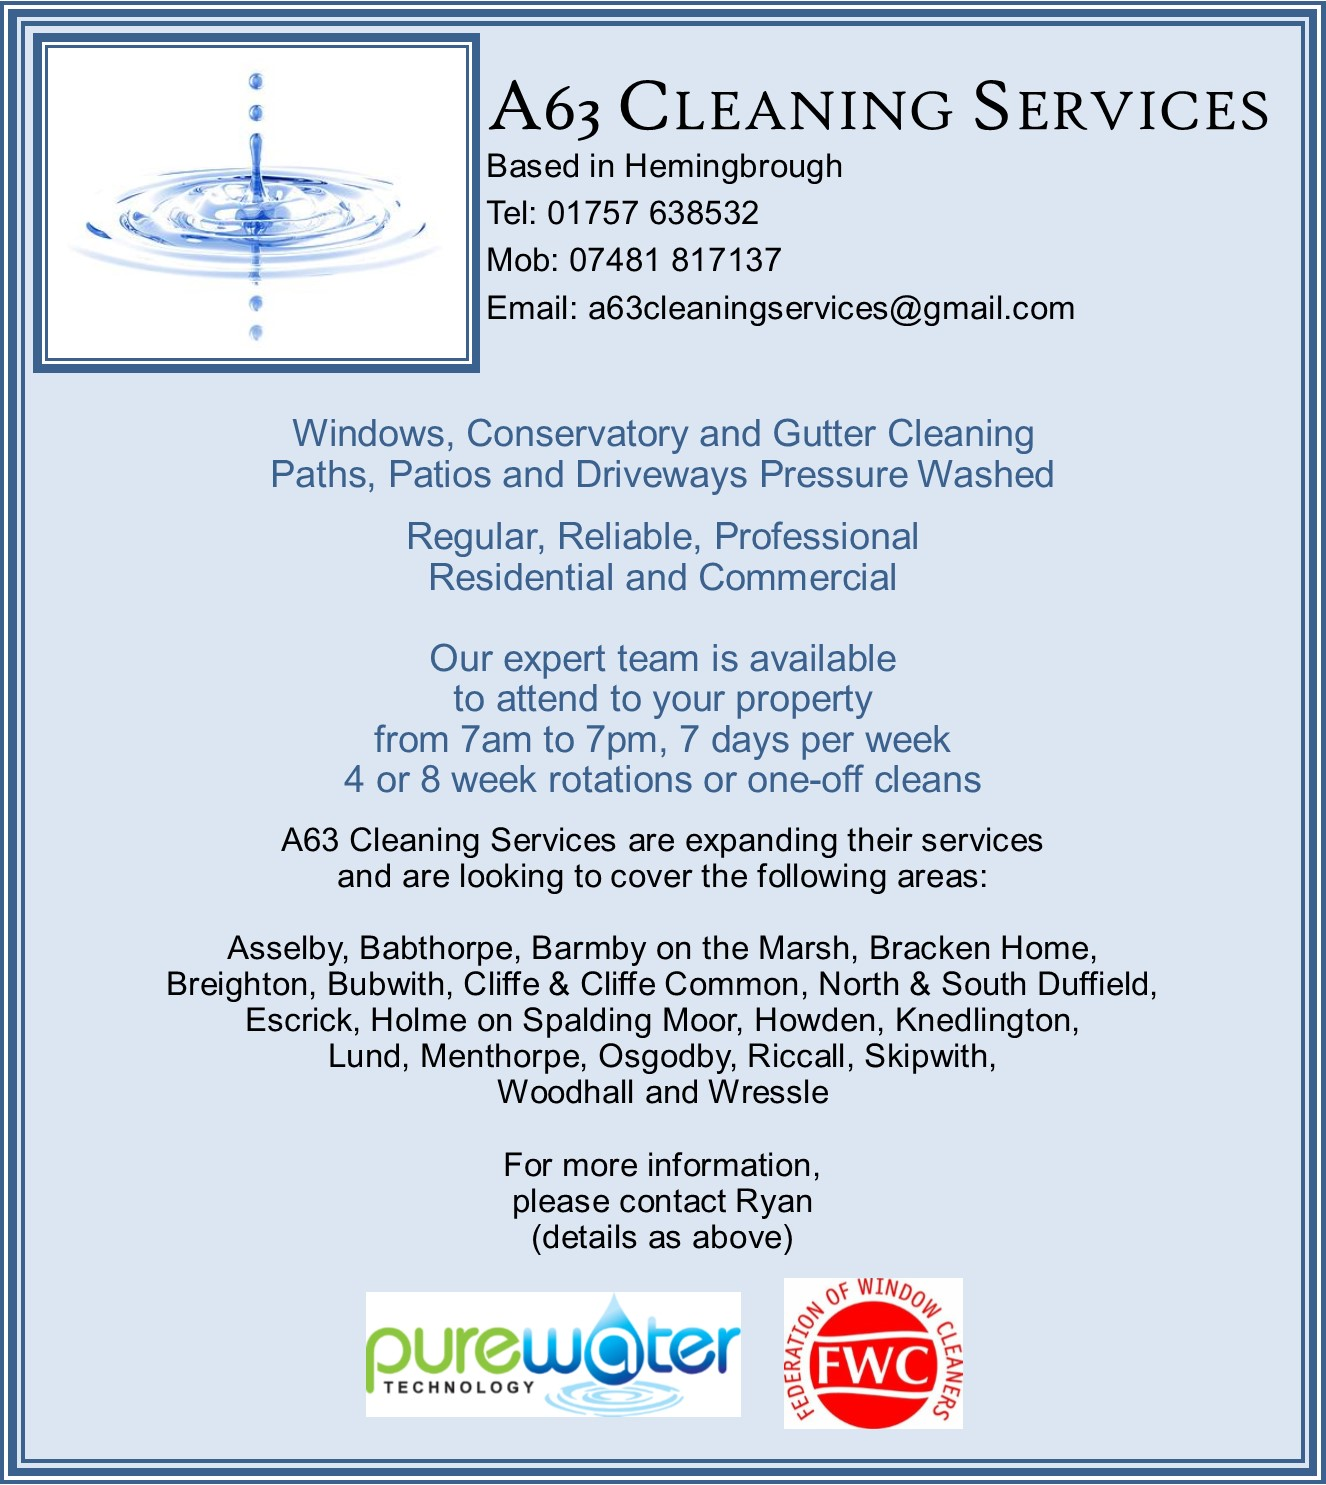 A63 Cleaning Services